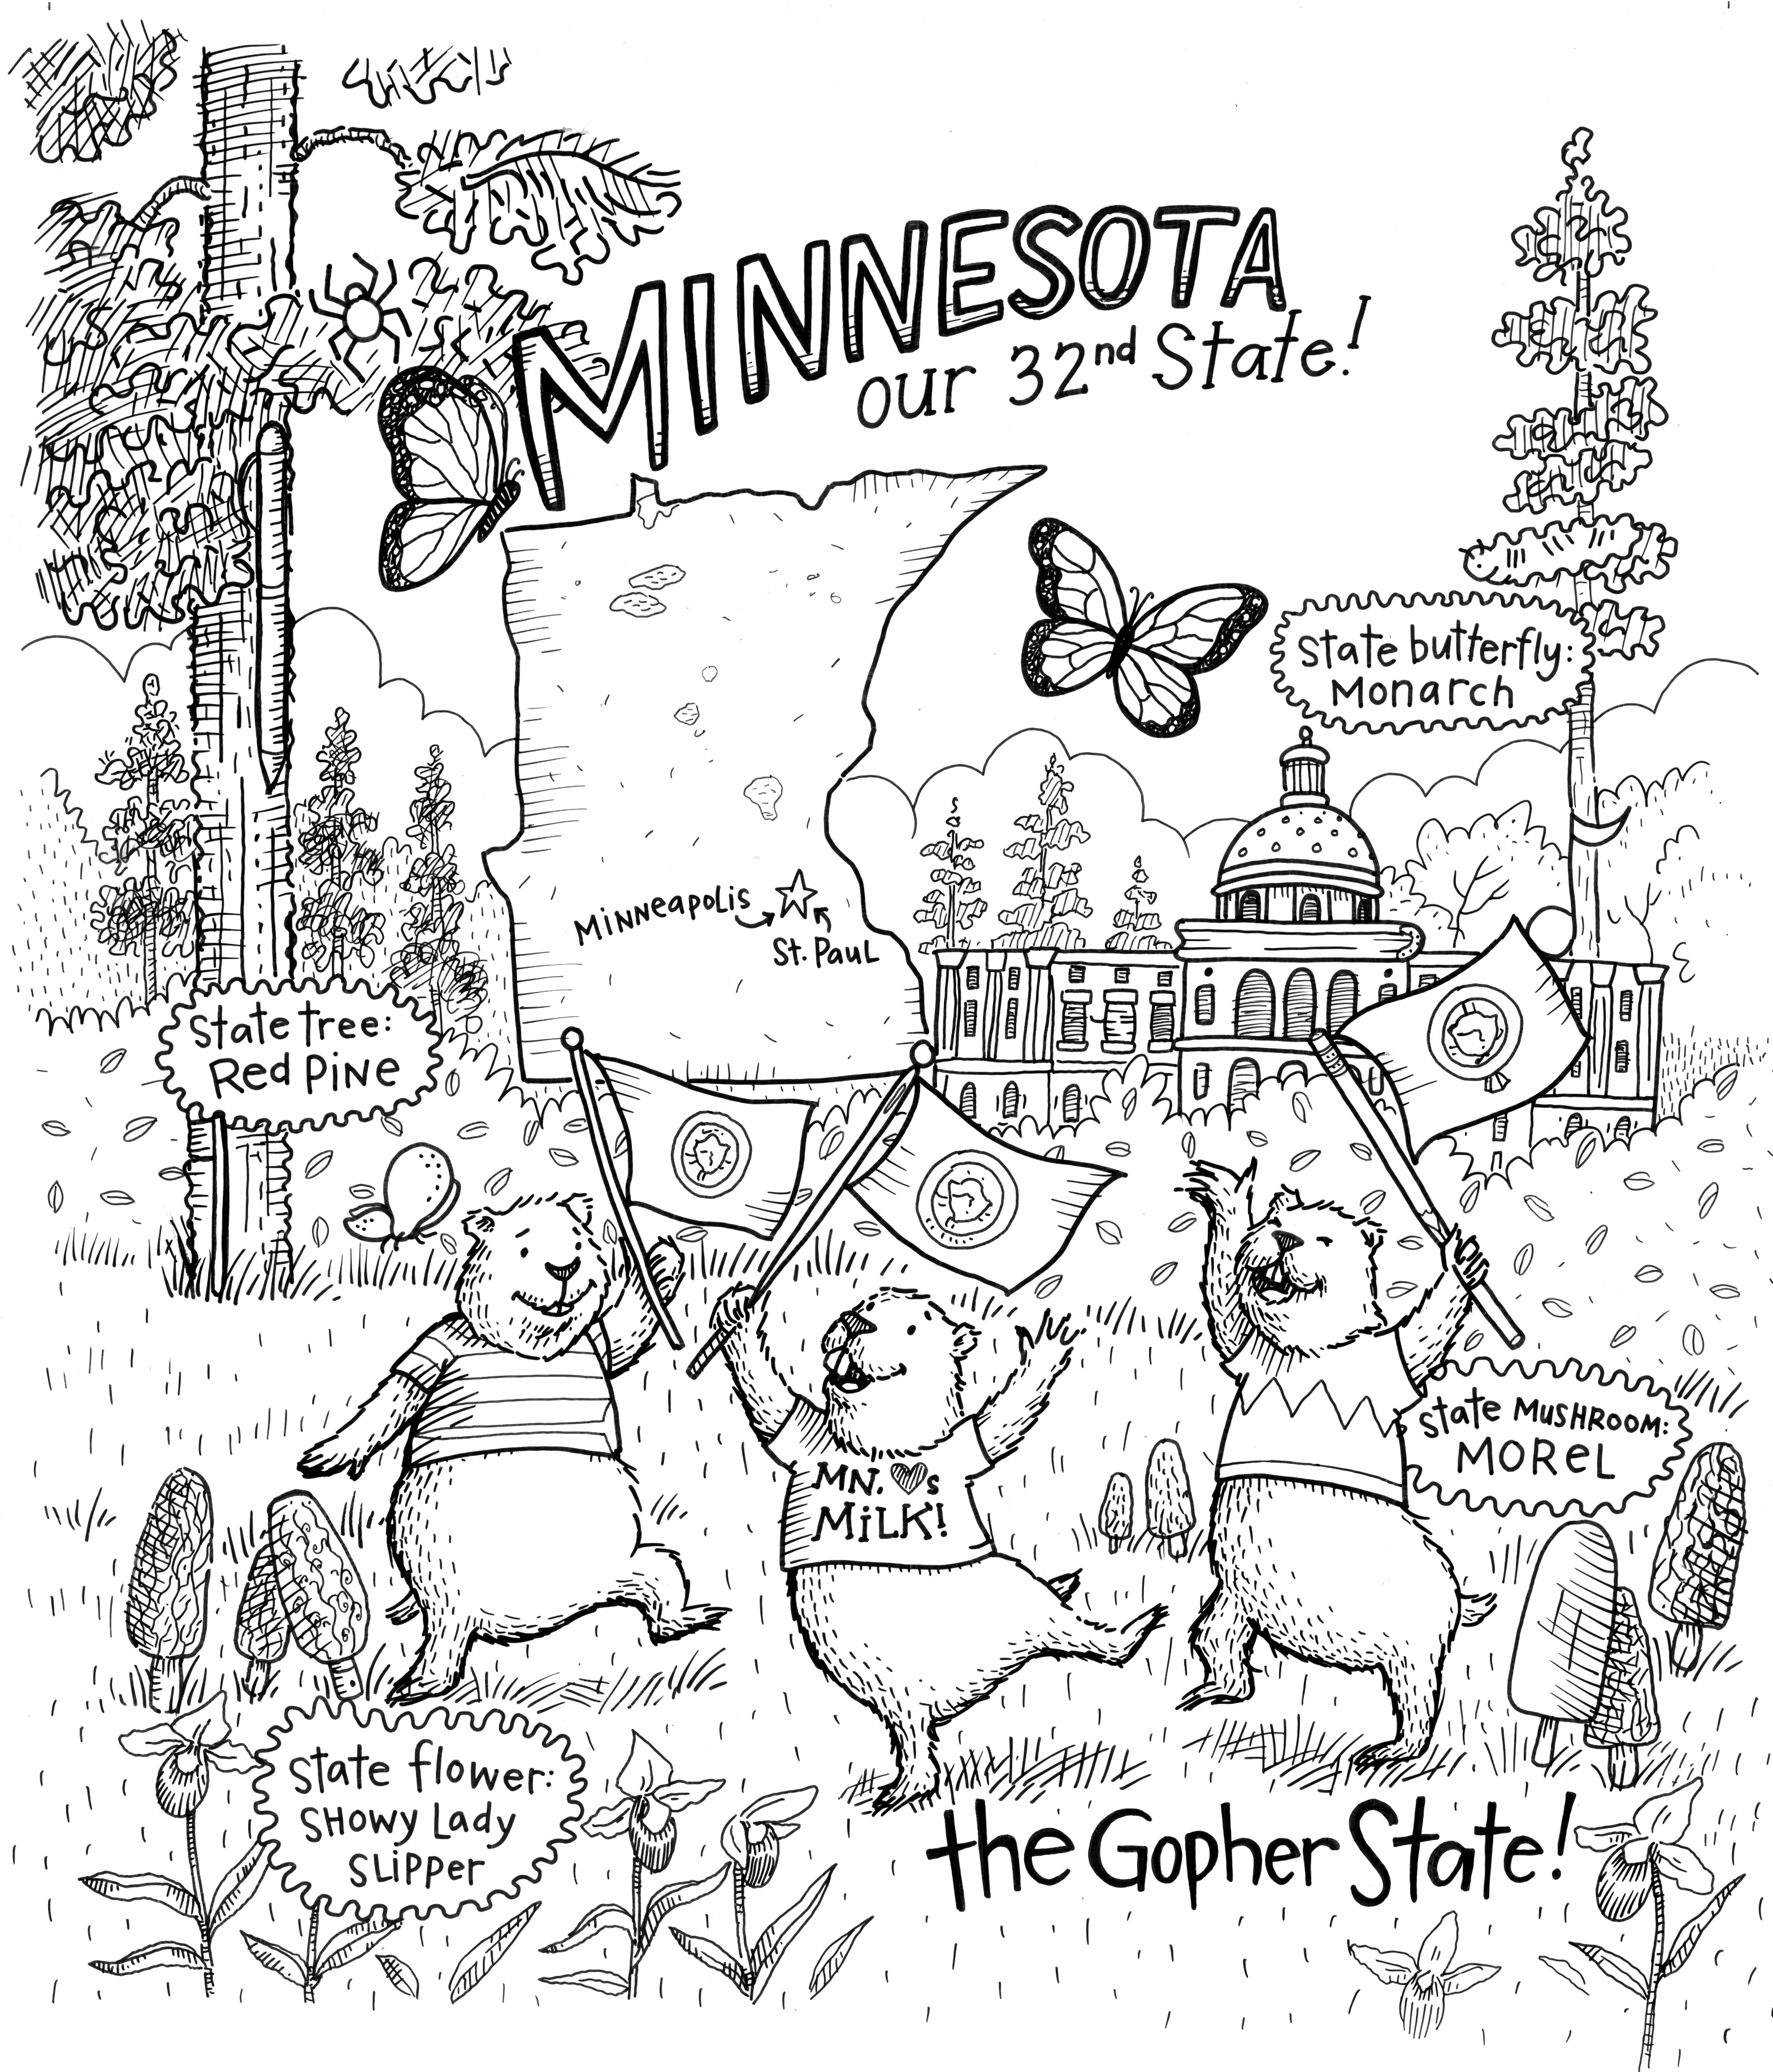 The Grand State of Minnesota